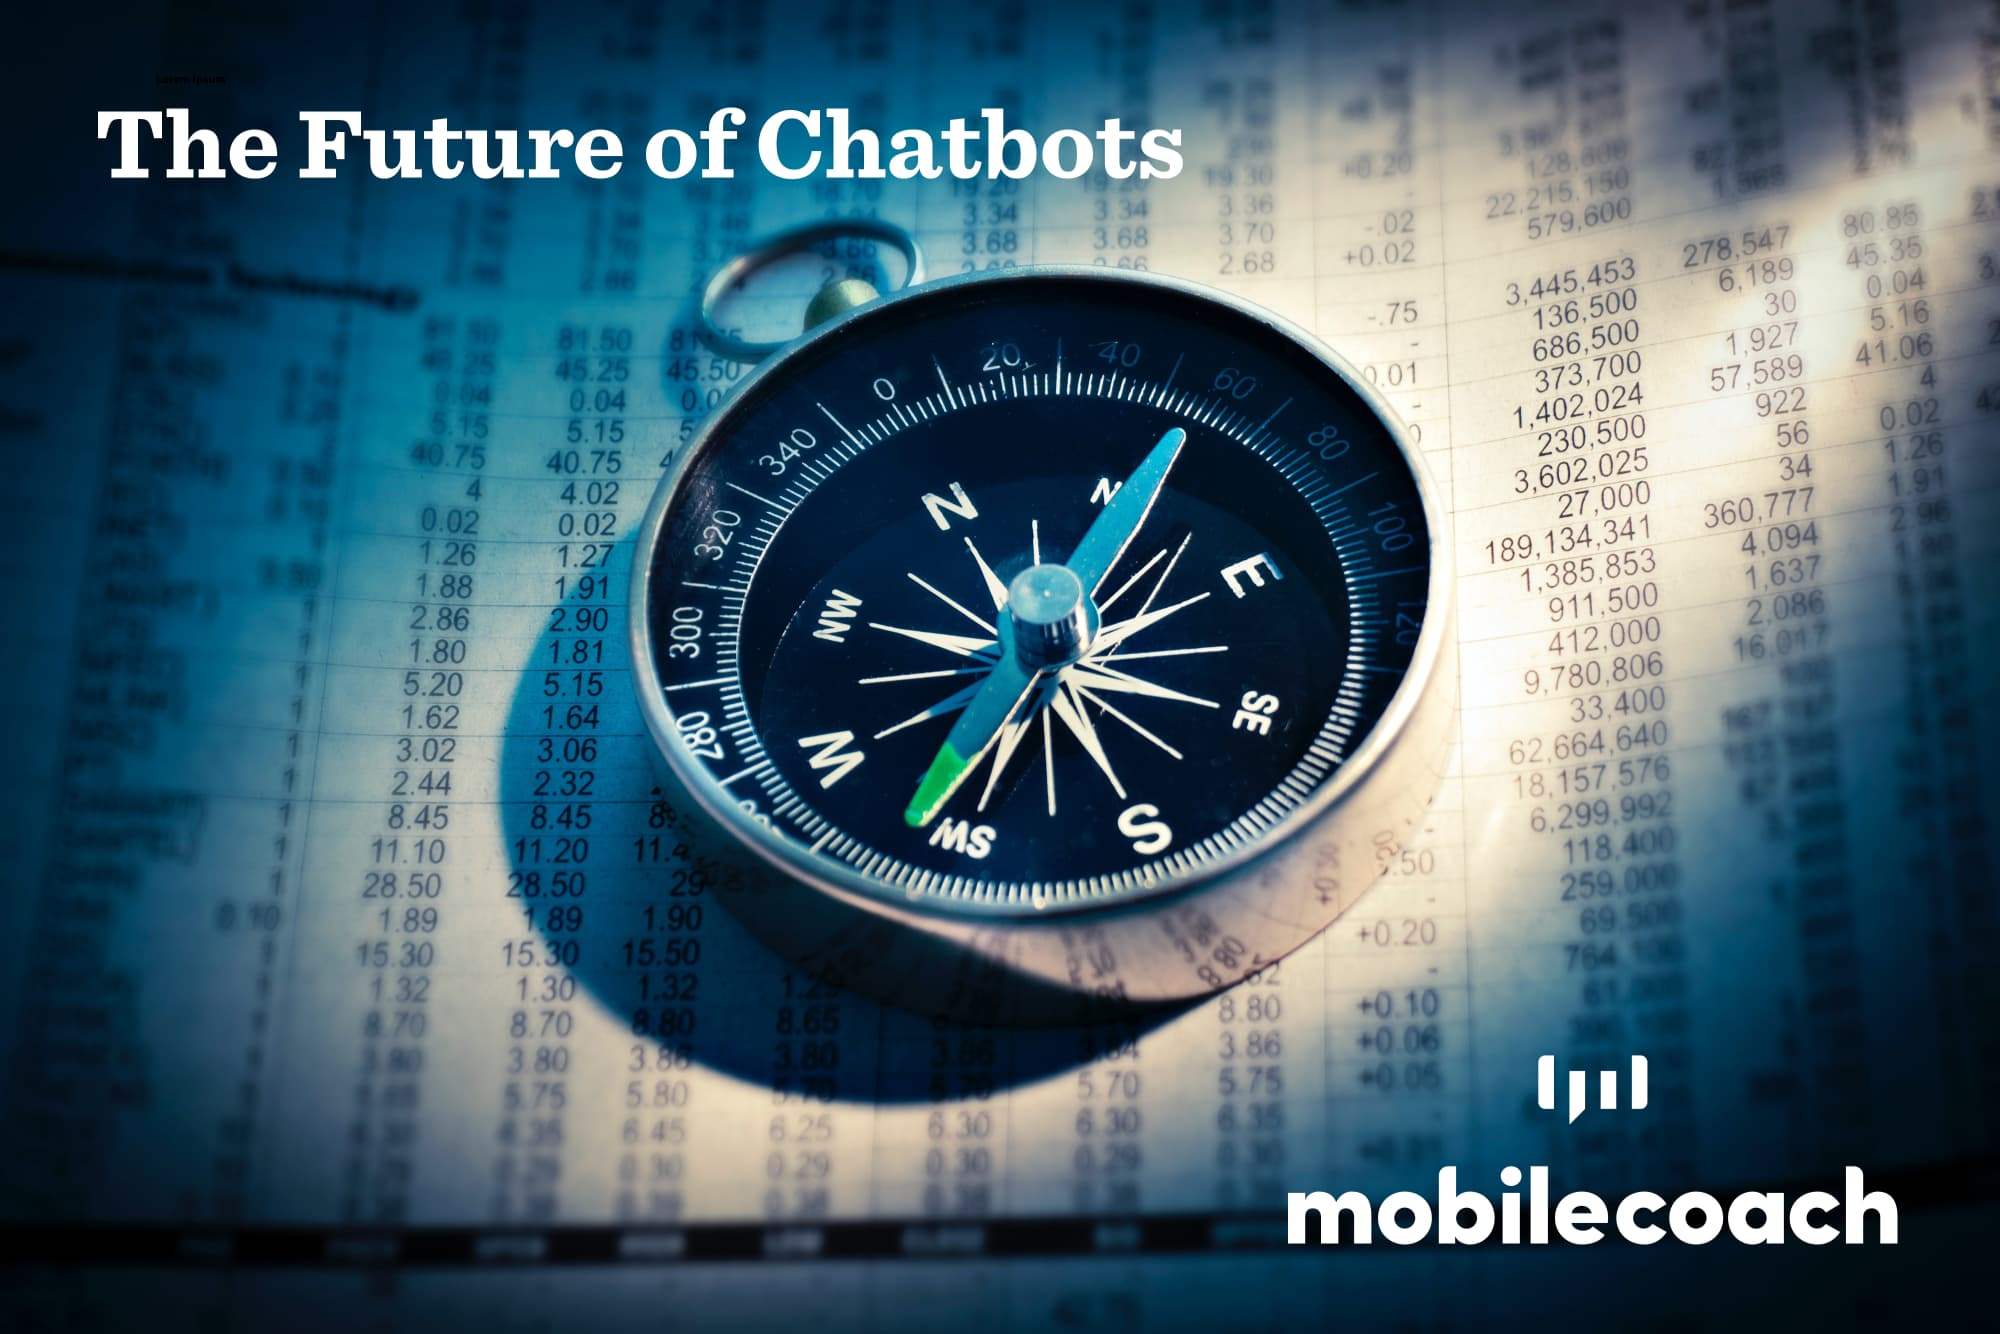 Chatterbots 4 – The Future of Chatbots